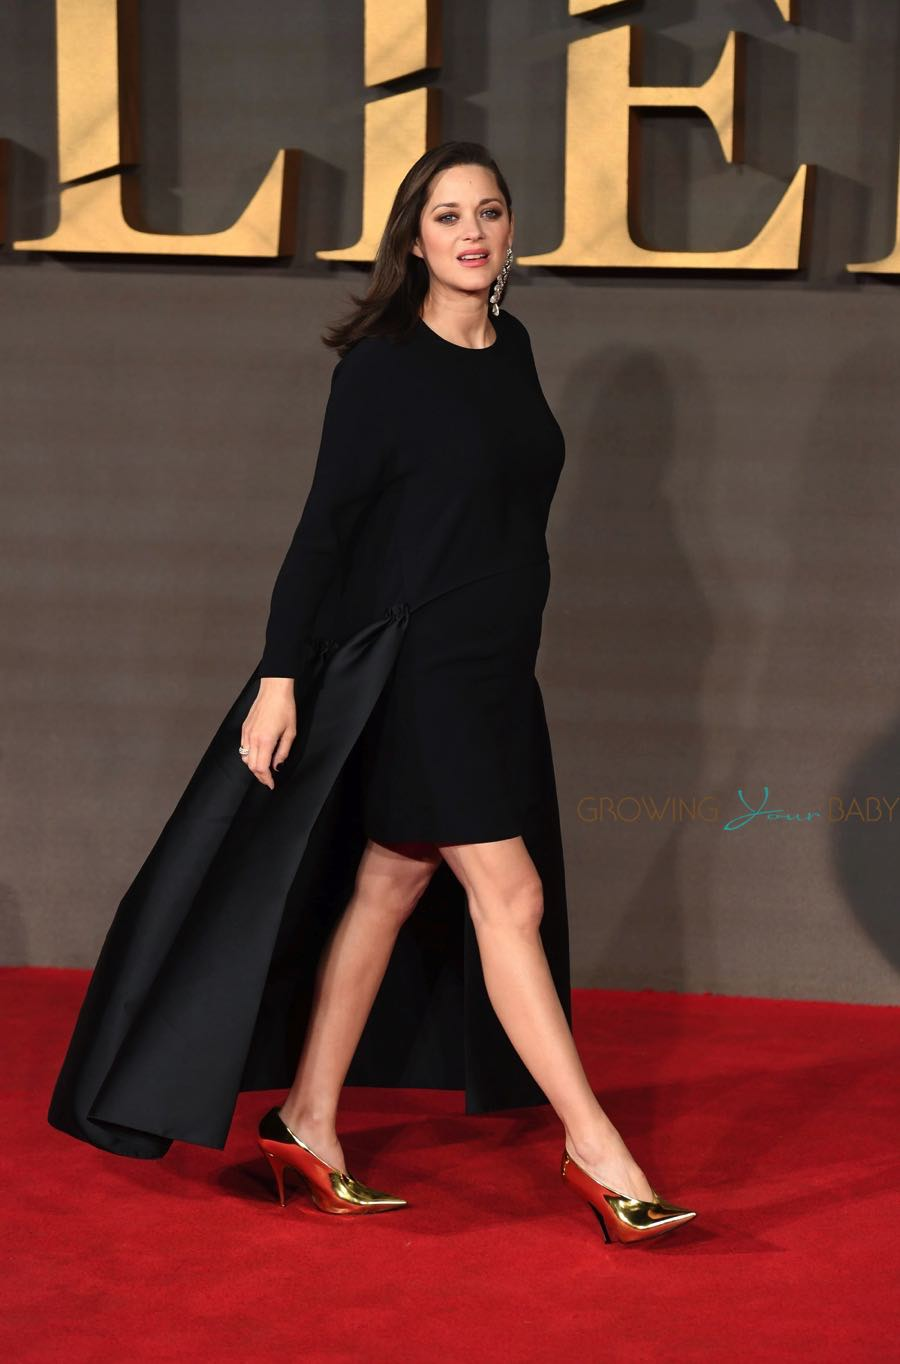 Pregnant Marion Cotillard at 'Allied' Premiere held at the Odeon Leicester Square